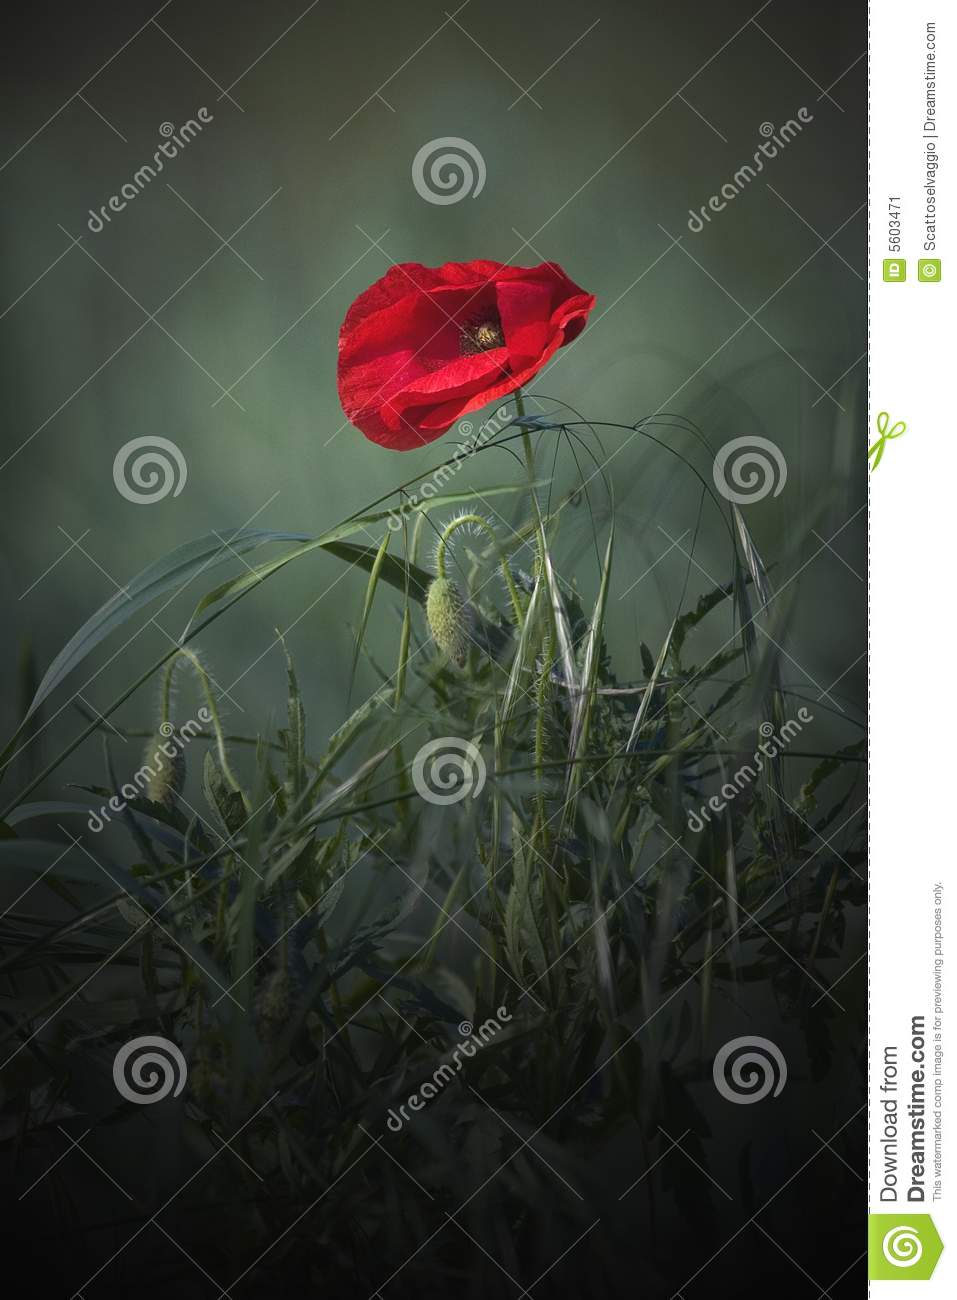 Papaver (Papaver rhoeas), Corn Poppy, Field Poppy, Flanders Poppy, or Red Poppy,